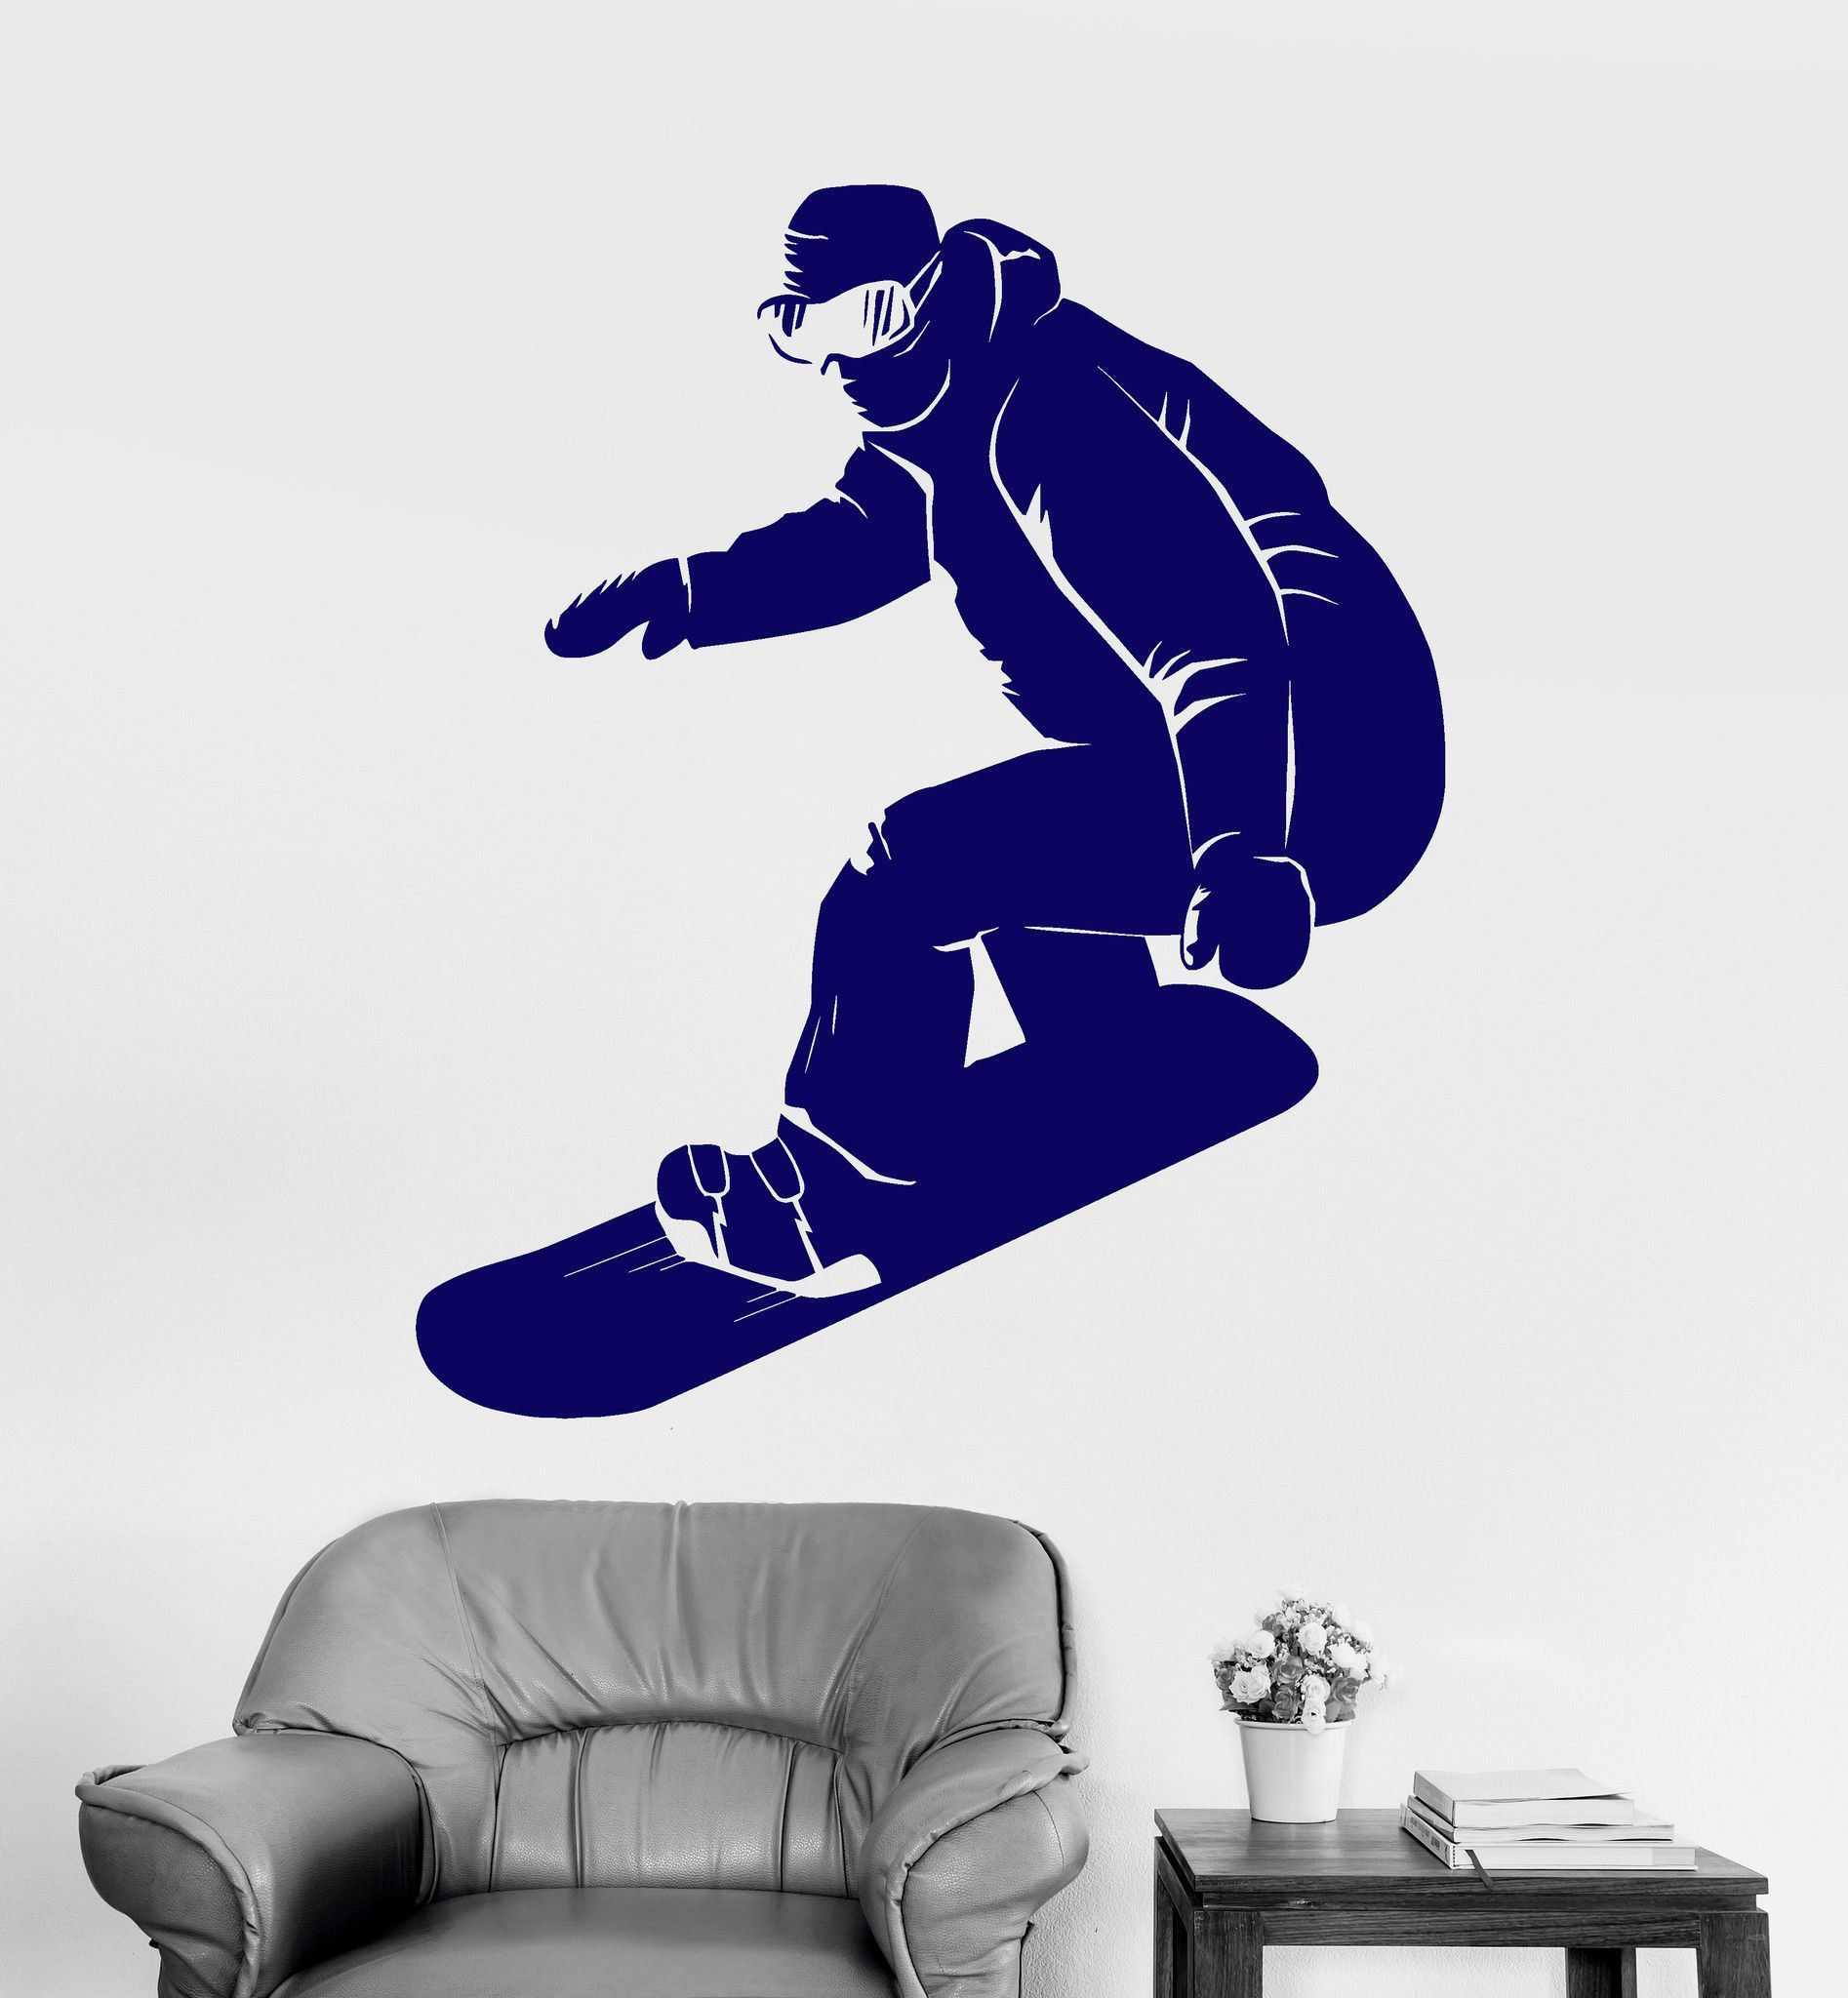 Vinyl Wall Decal Snowboarder Extreme Sport Snowboarding